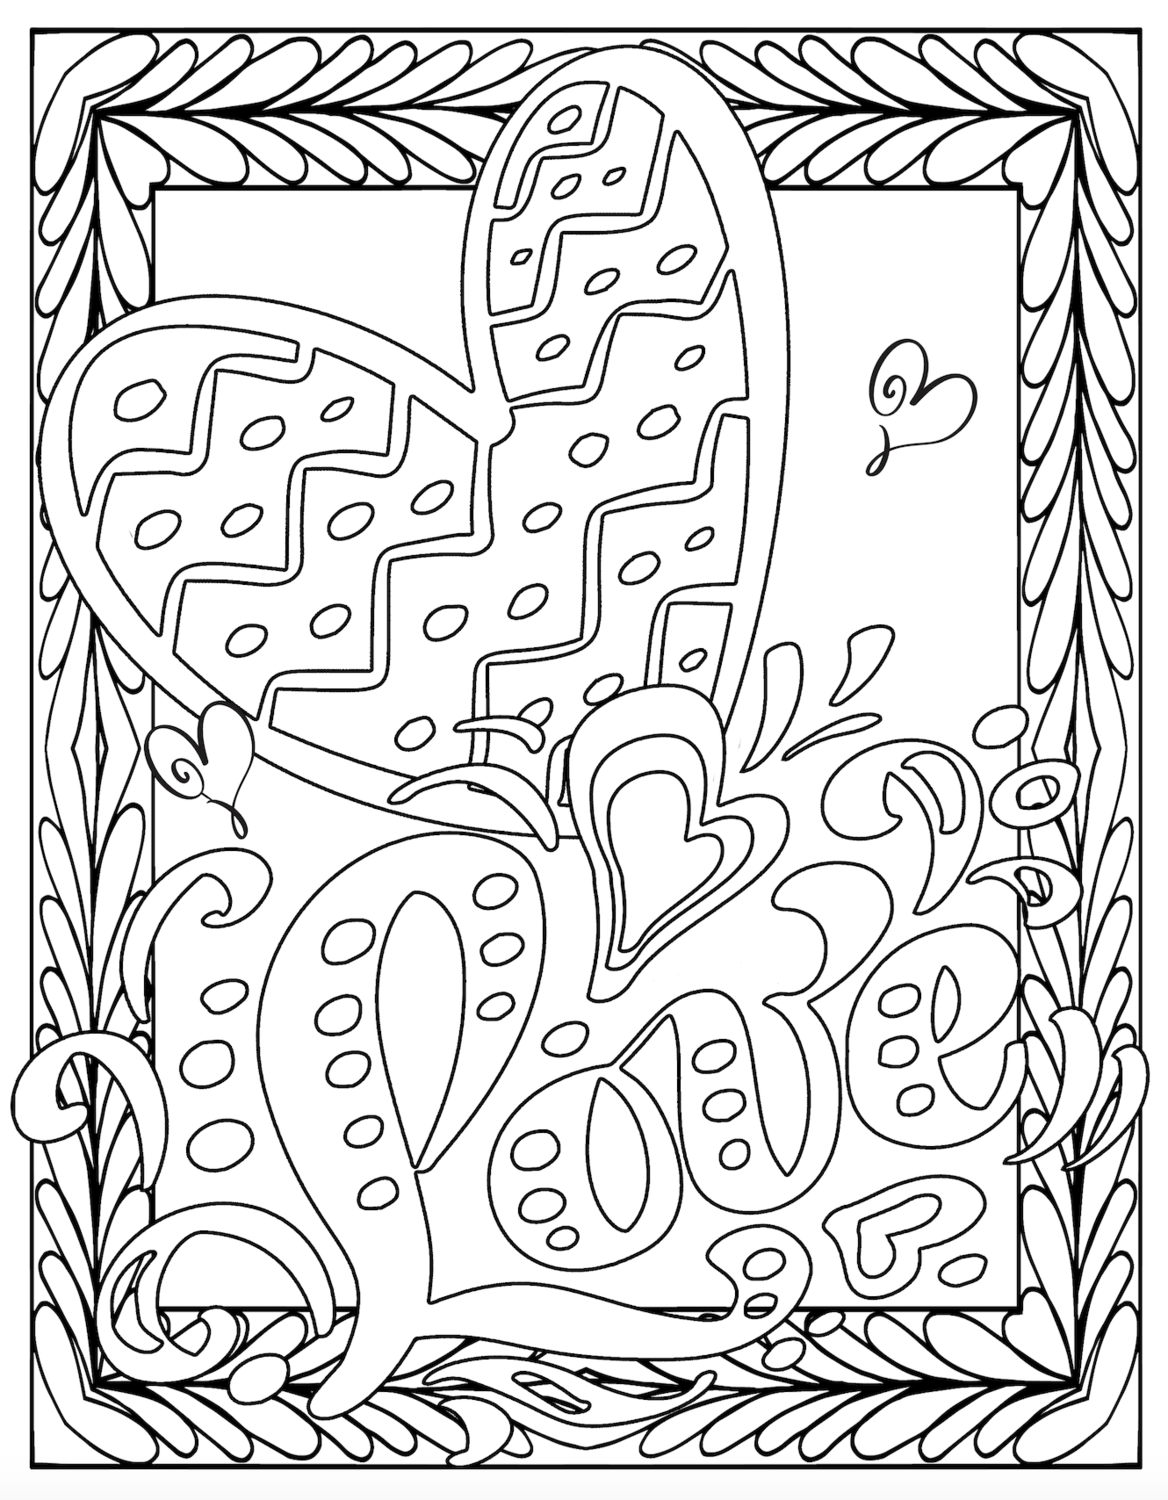 valentines day coloring pages free printable valentine39s free printable love coloring pages pretty free printable day pages valentines coloring